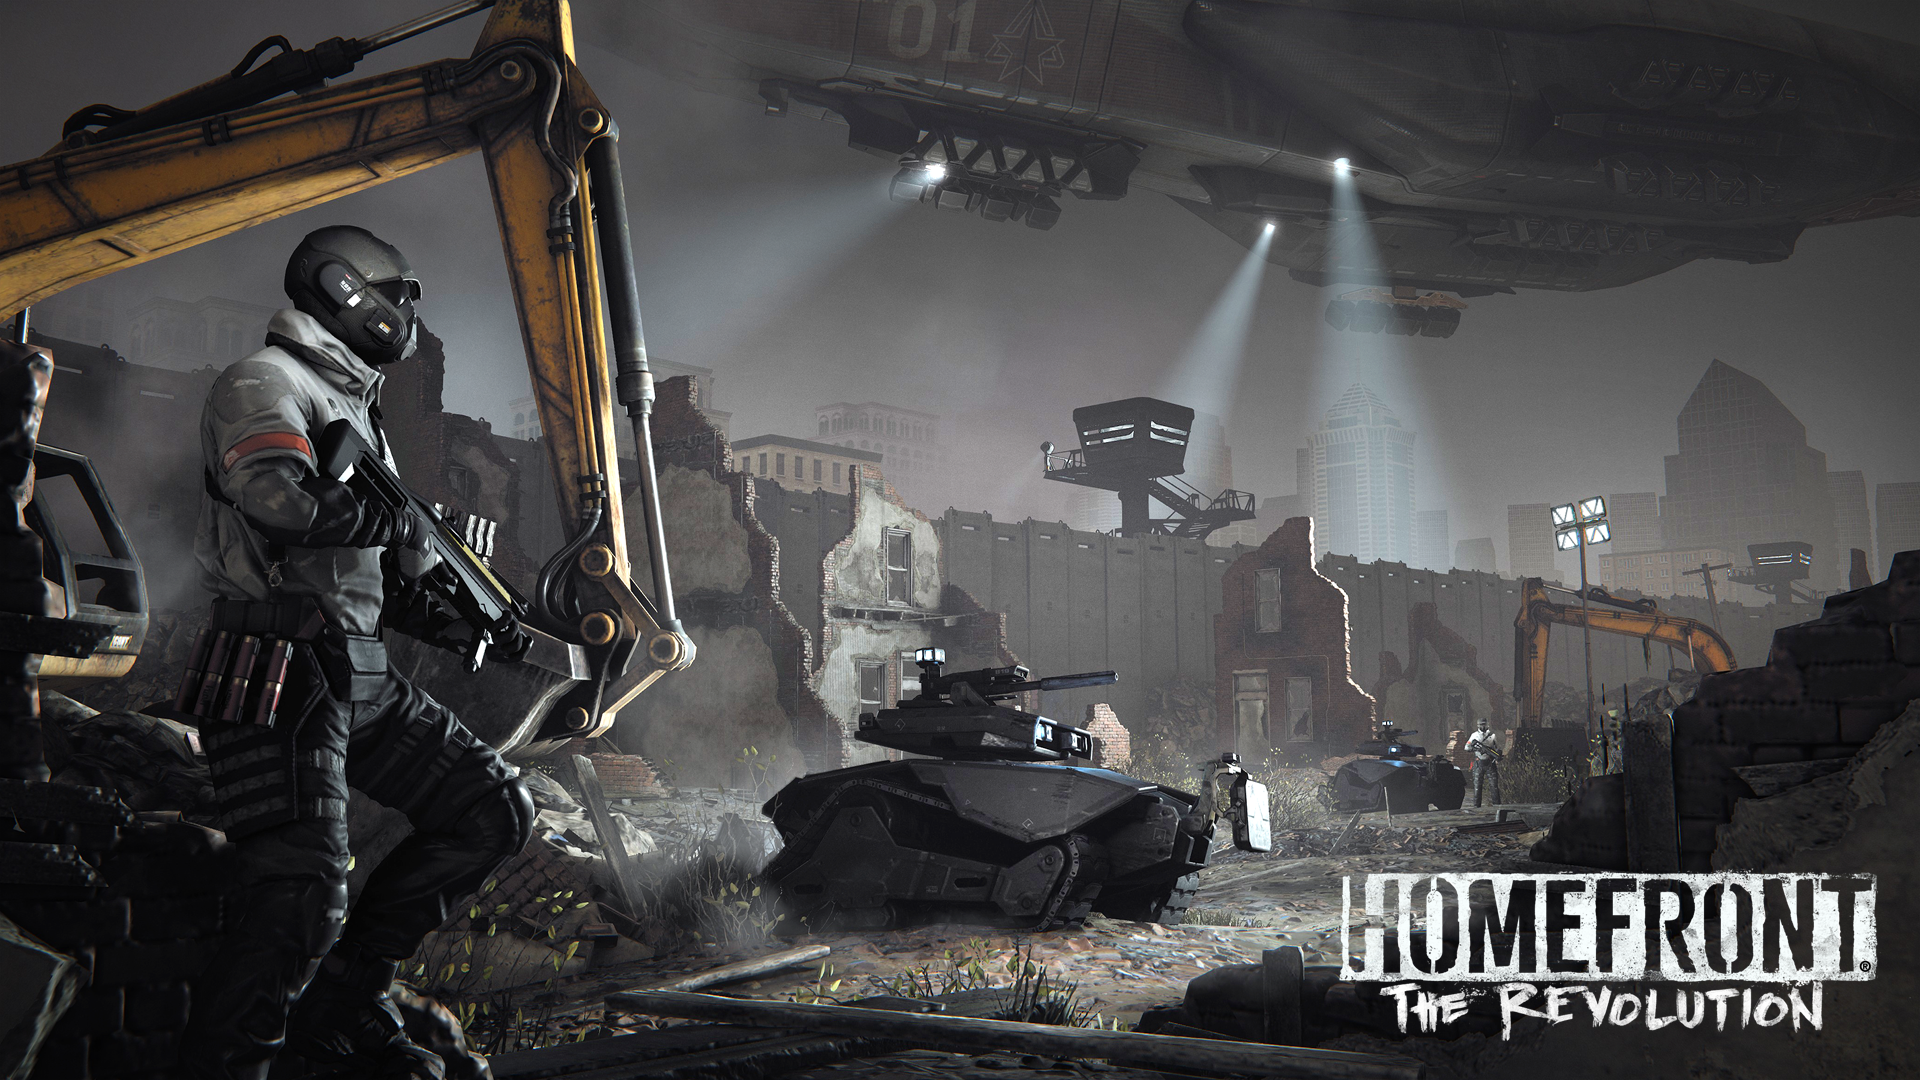 Speaking Of Multiplayer Homefront The Revolution Will Support Four Player Online Cooperative Play